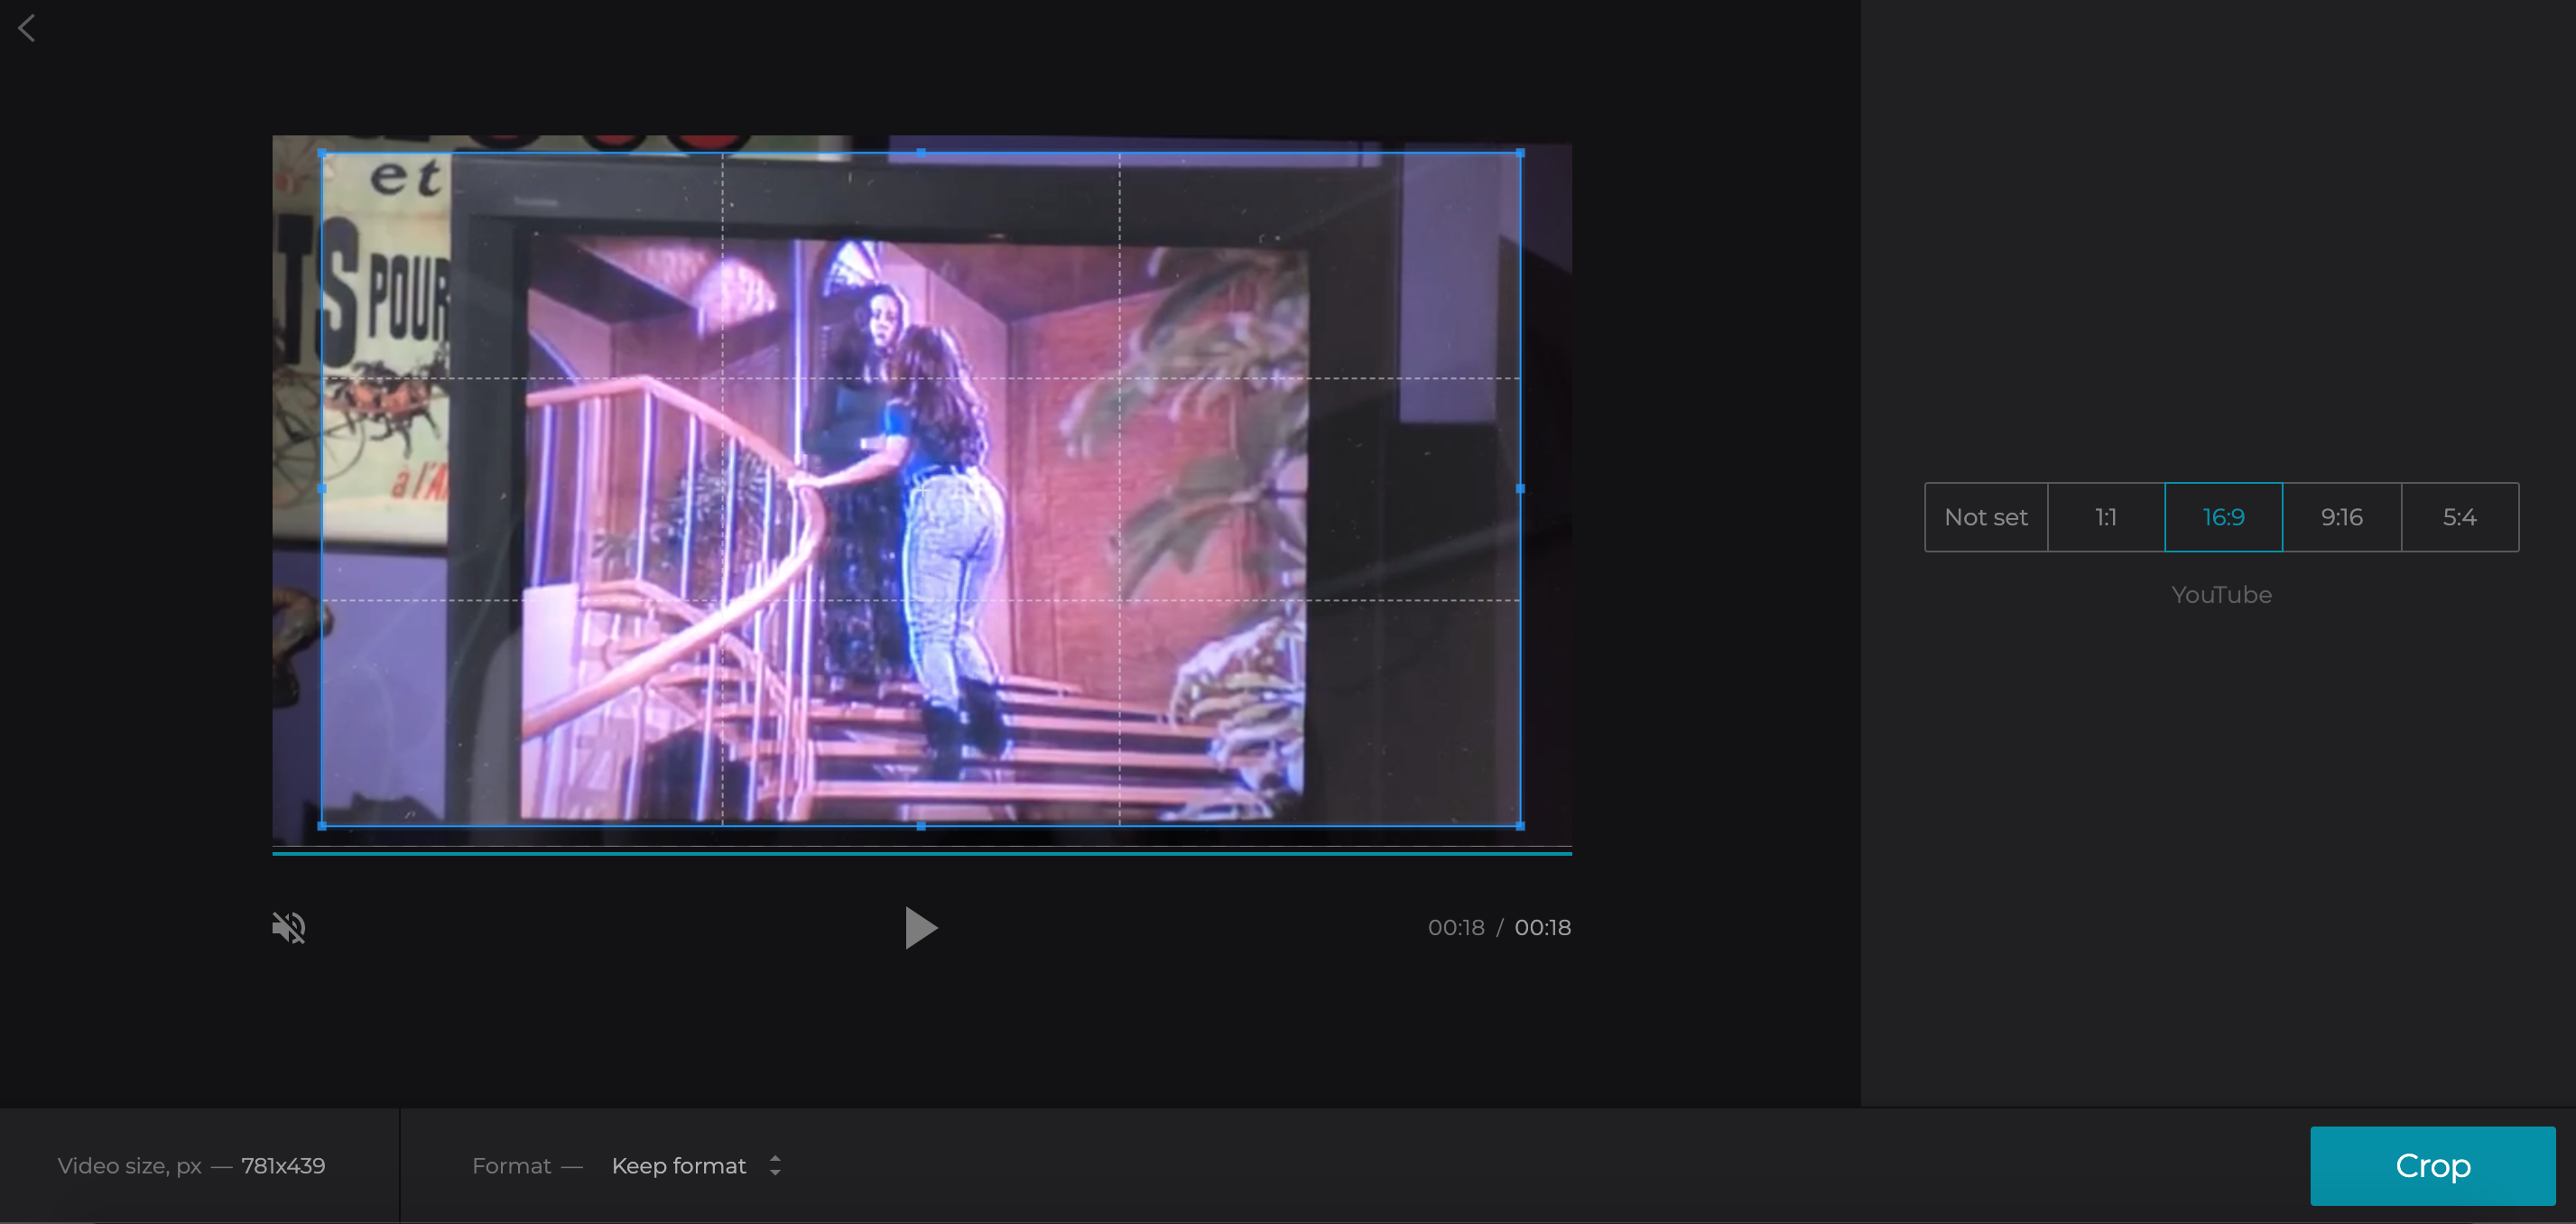 Crop the YouTube video by selecting the aspect ratio